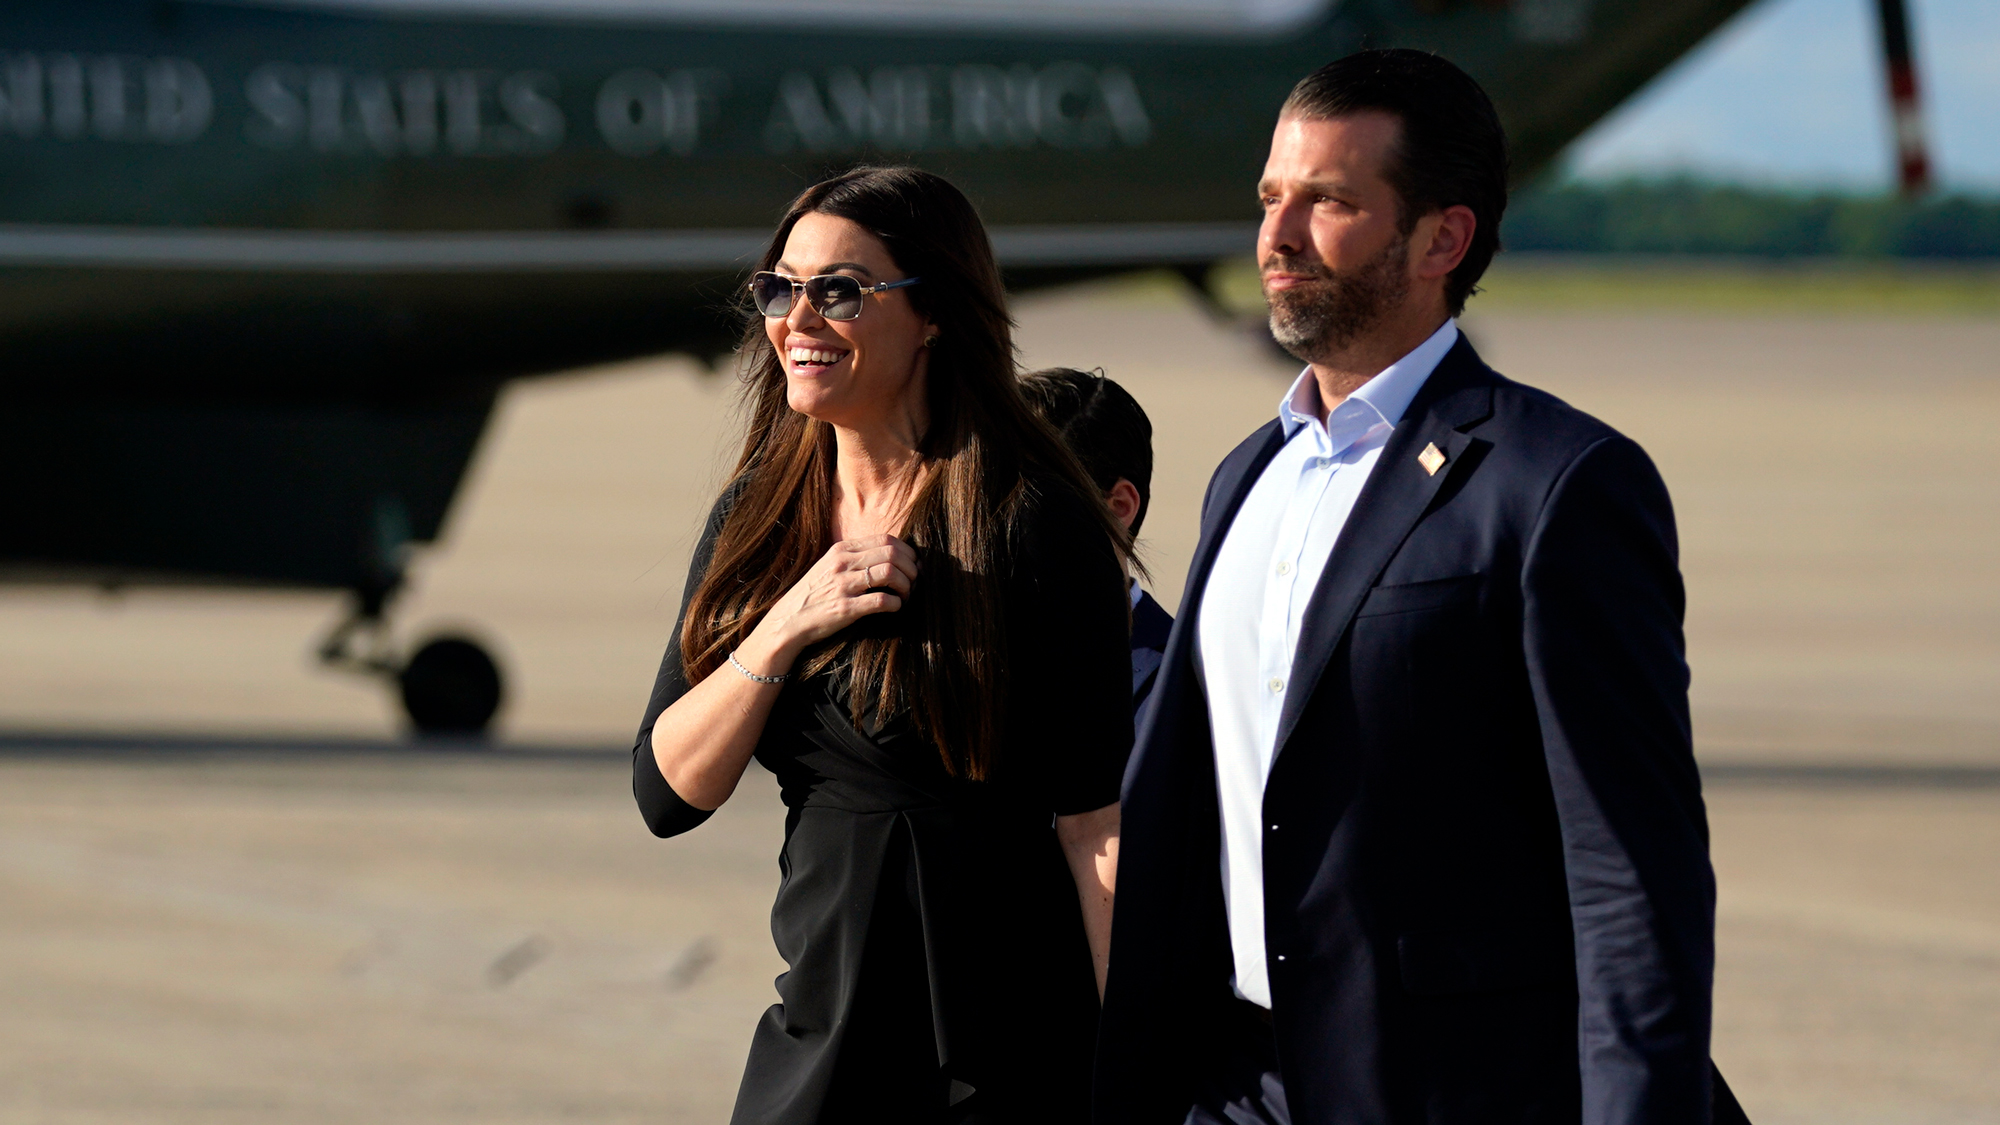 Kimberly Guilfoyle — Donald Trump Jr.'s girlfriend and top Trump campaign official — tests positive for coronavirus